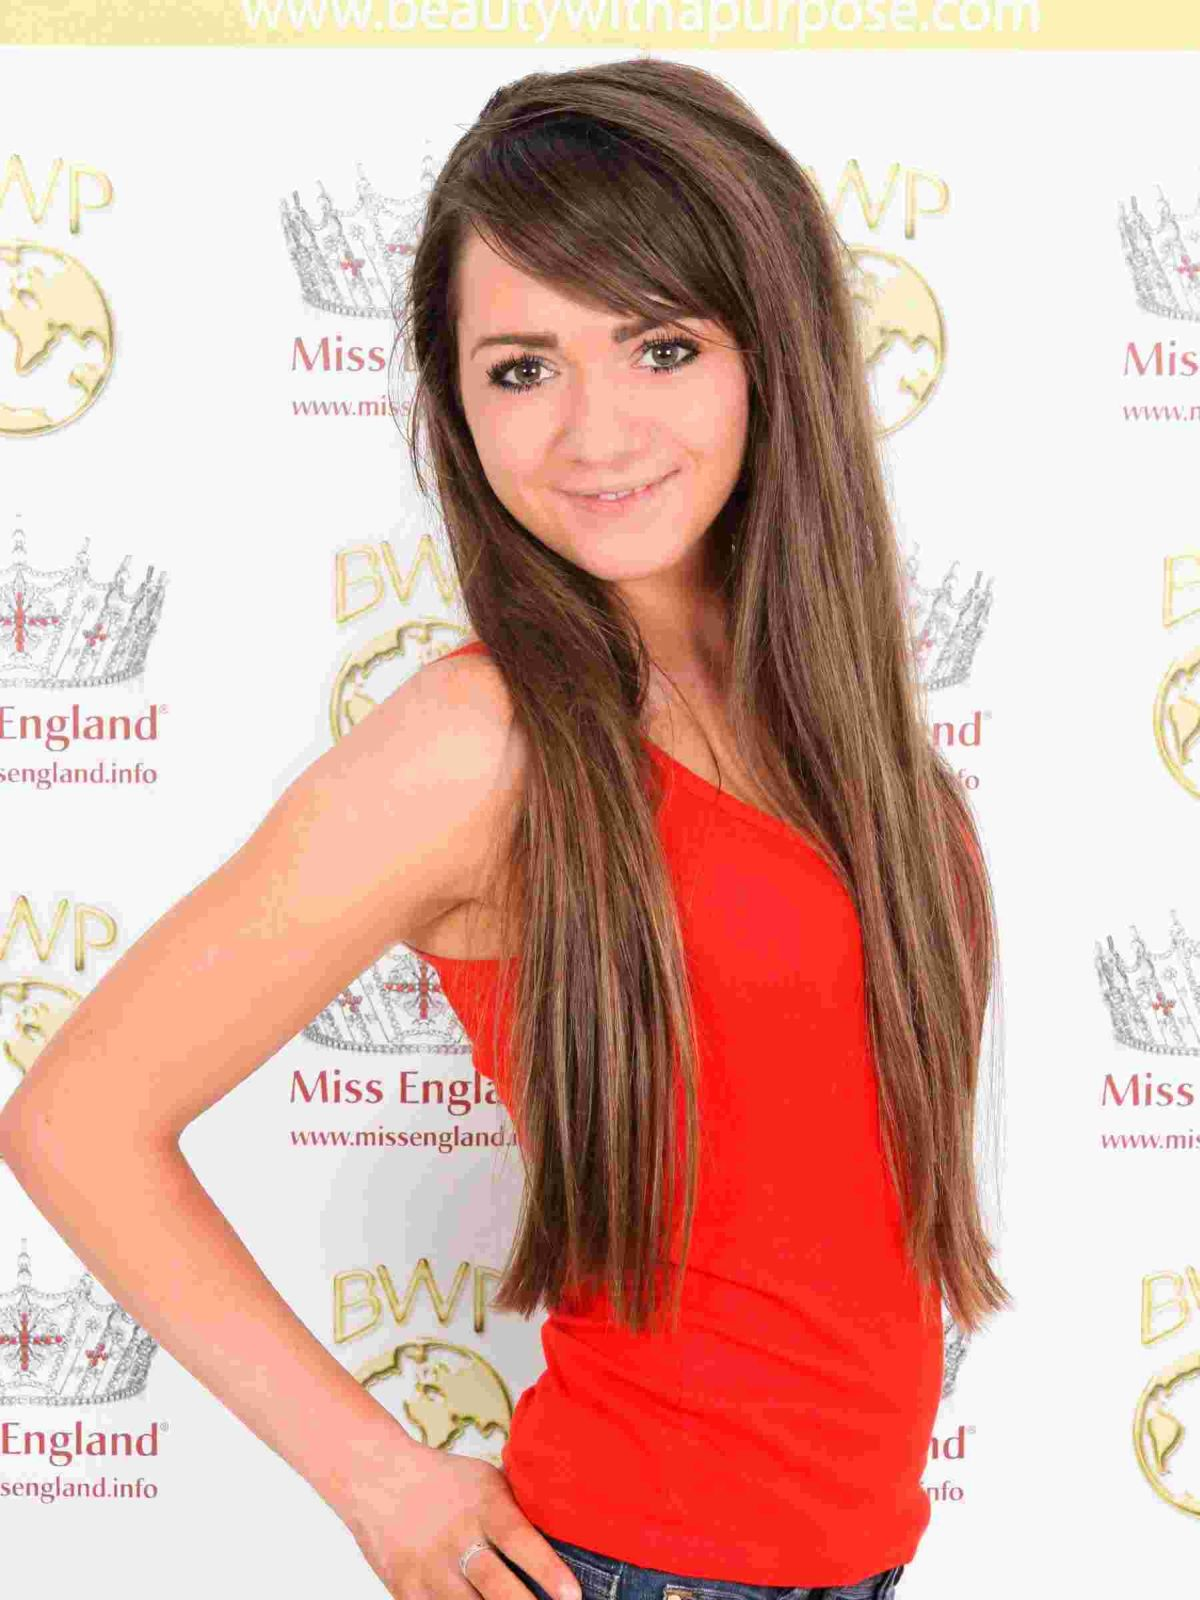 Two aspiring beauty queens vie for Miss Cornwall crown